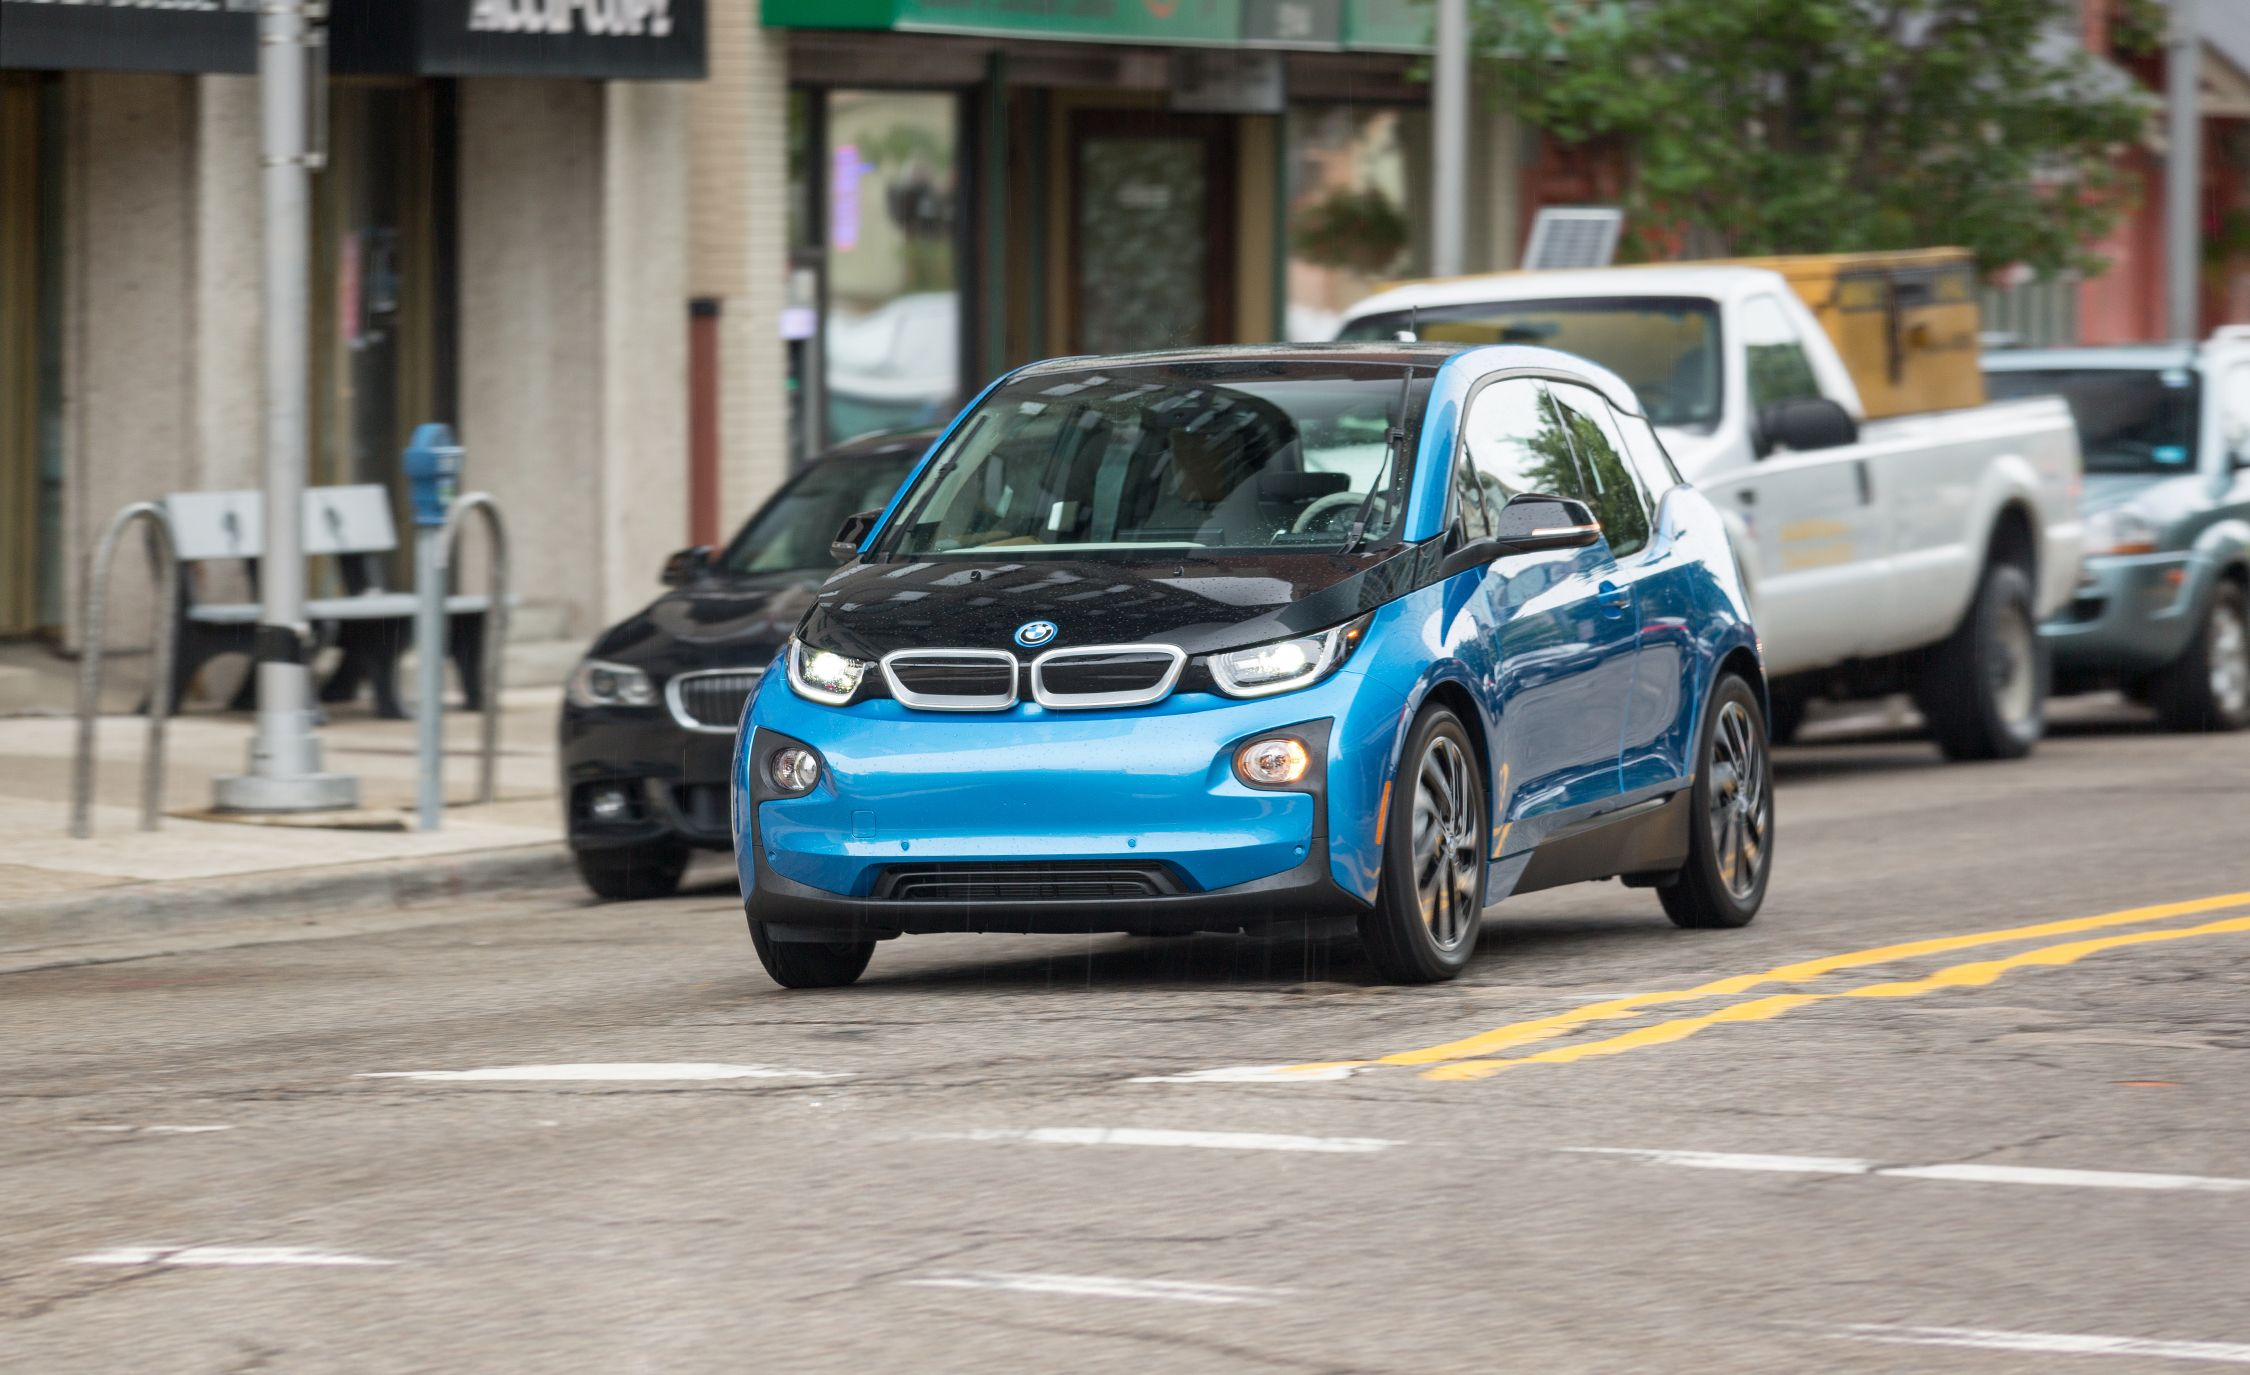 2019 Bmw I3 Reviews Bmw I3 Price Photos And Specs Car And Driver